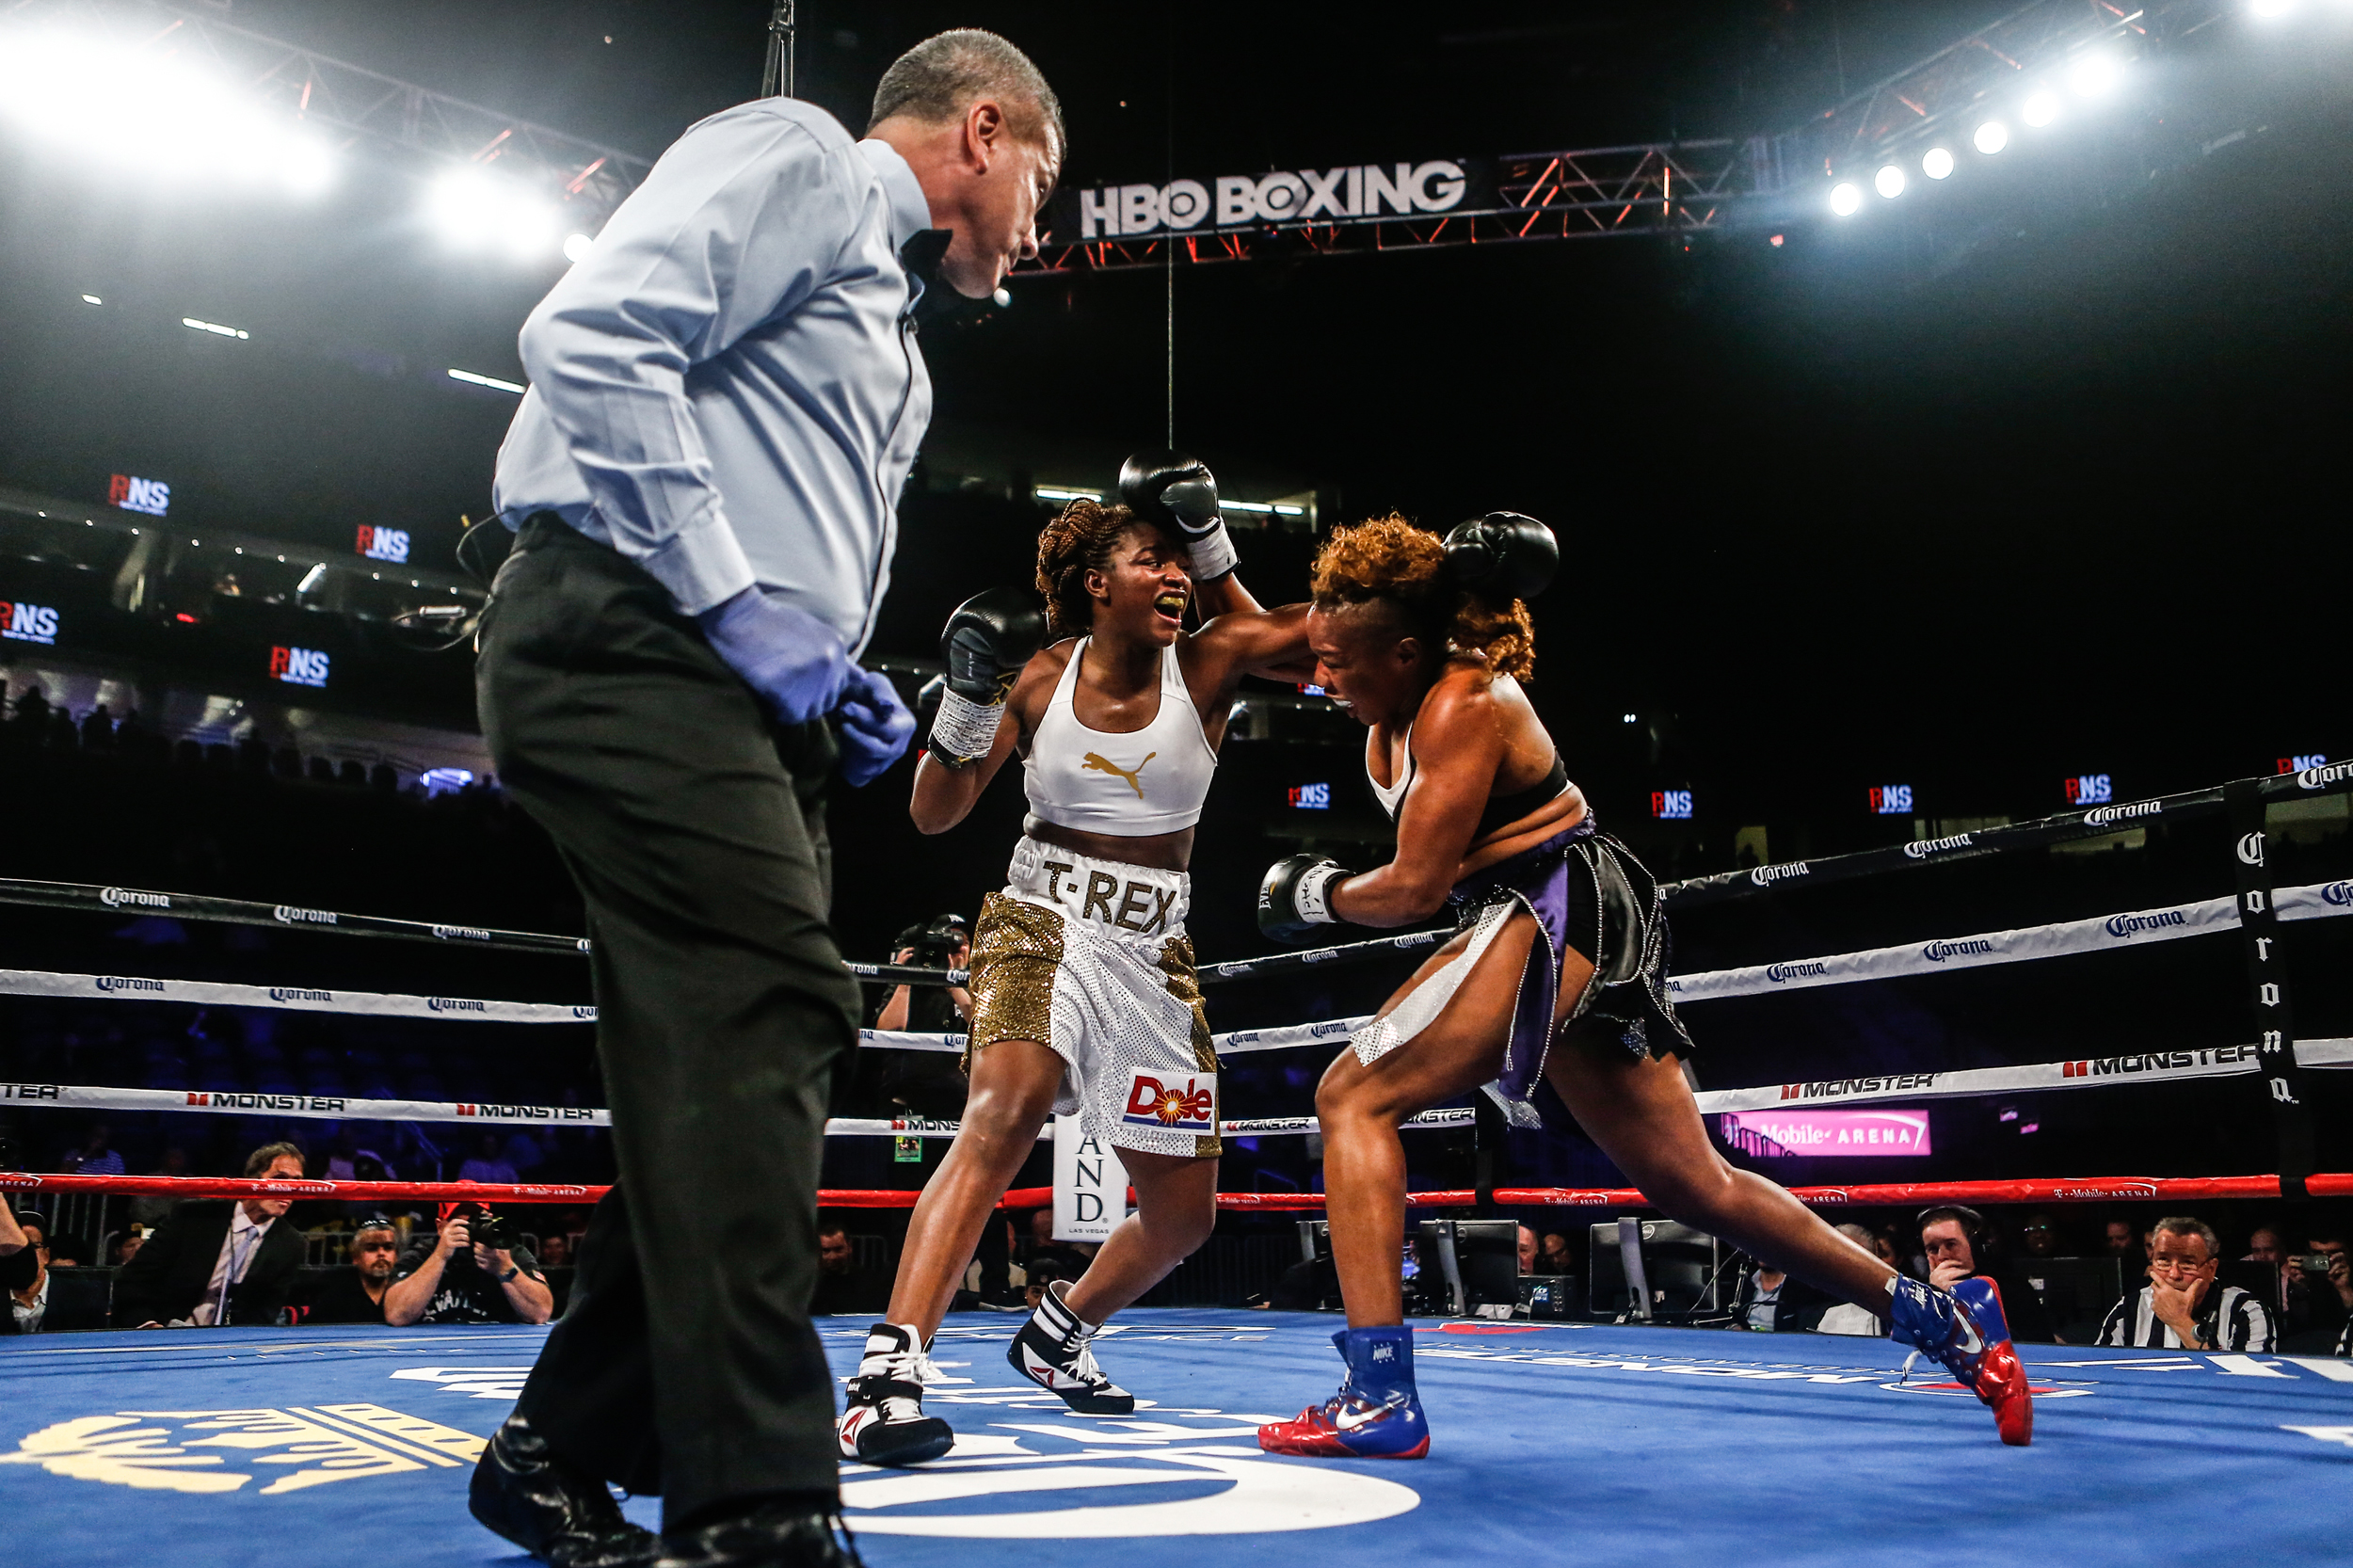 Claressa Shields, two-time Olympic gold medalist boxer, fights opponent Franchon Crews inside the ring in a four-round bout on November 19th at the T-Mobile Arena in Las Vegas.